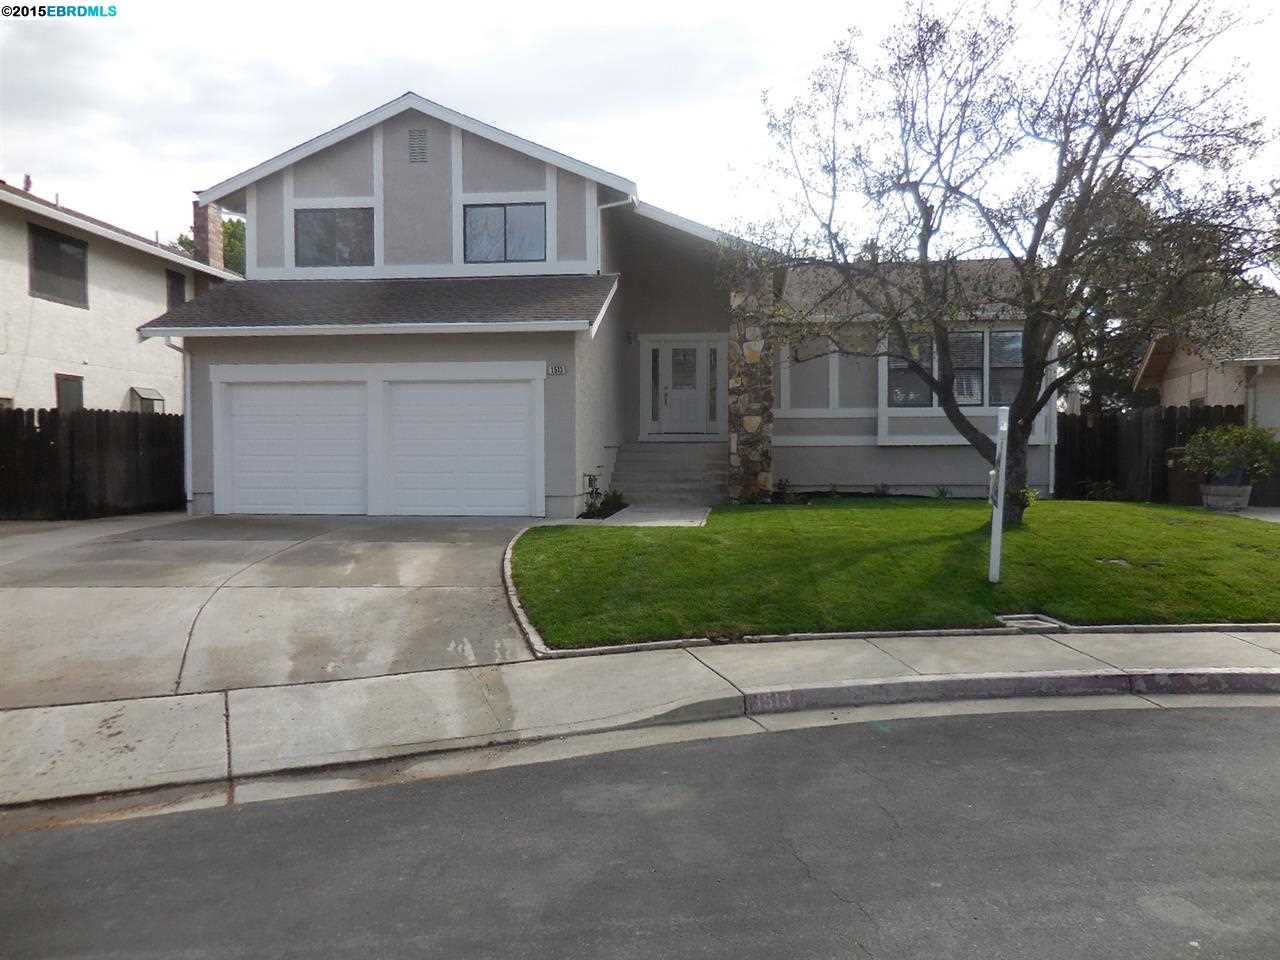 Single Family Home for Sale at 1513 ALEXIS Court Antioch, California 94509 United States